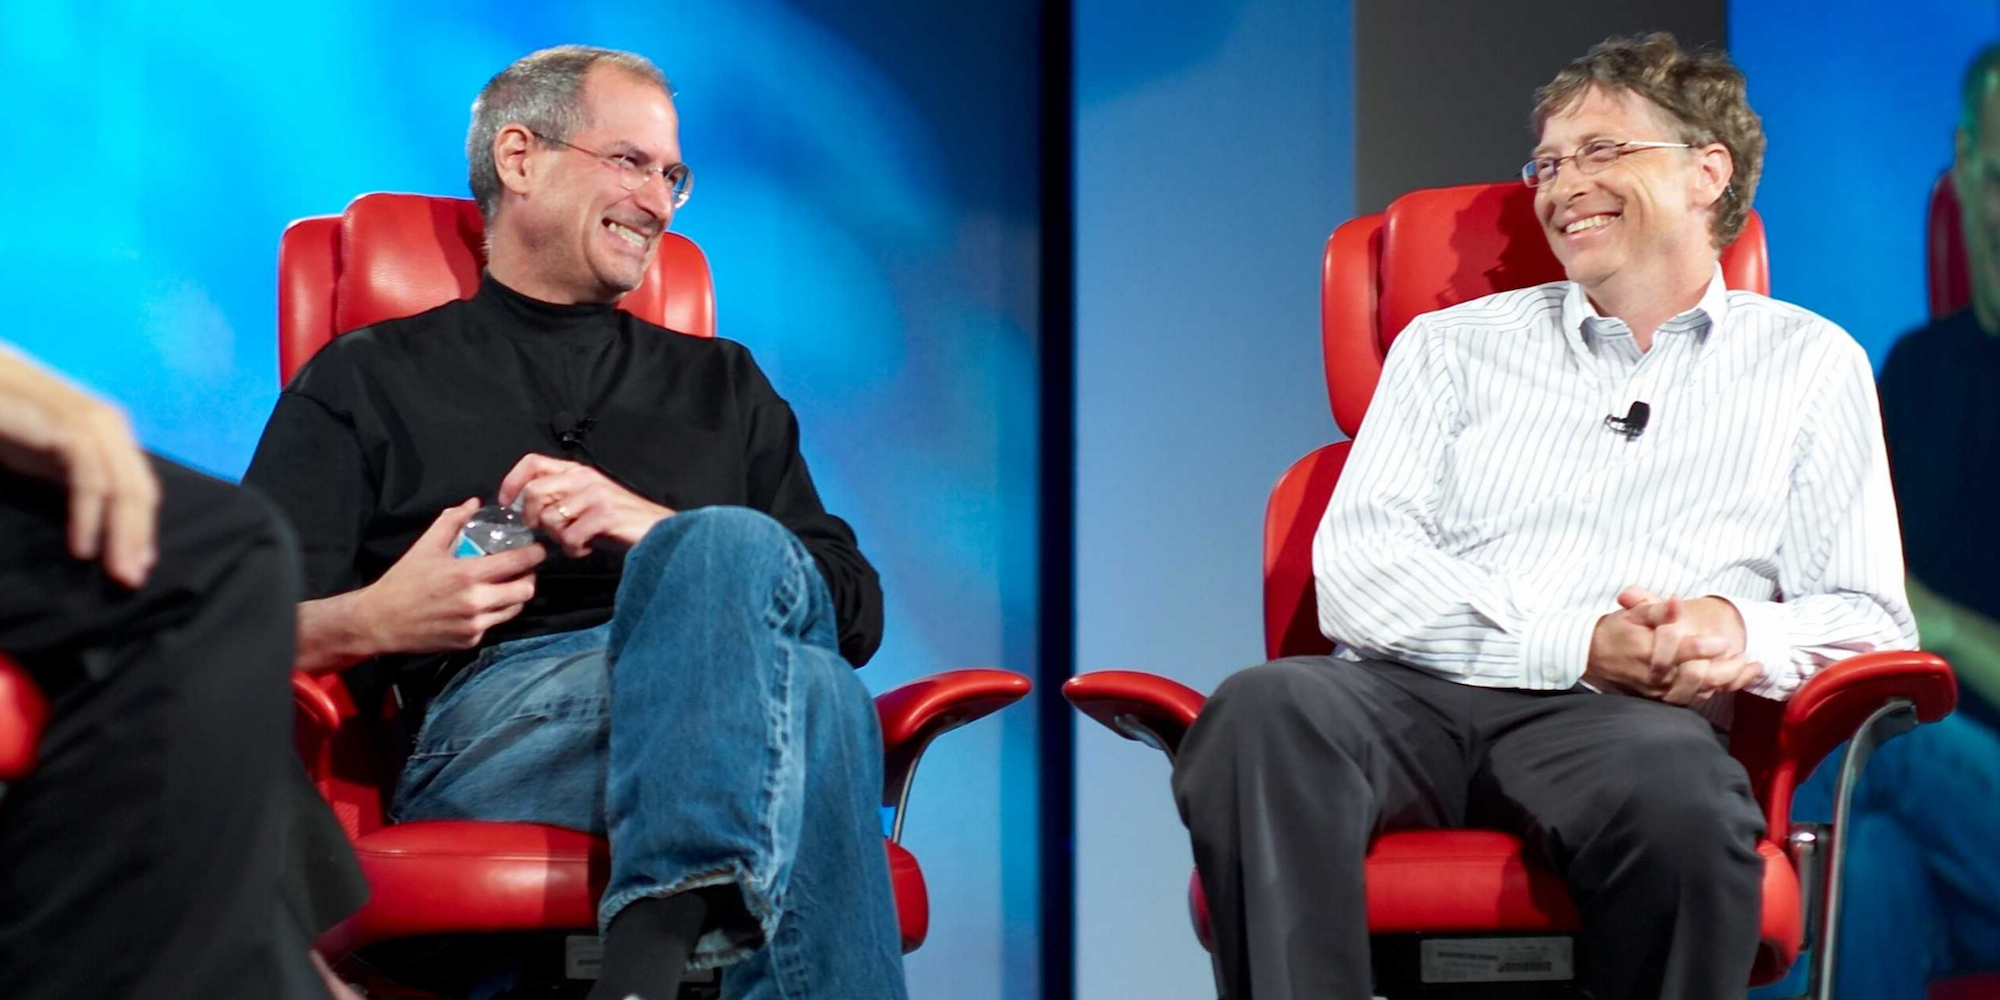 Bill Gates Praises Steve Jobs, Says he Used 'Spells' to Mesmerize People and Revitalize Apple